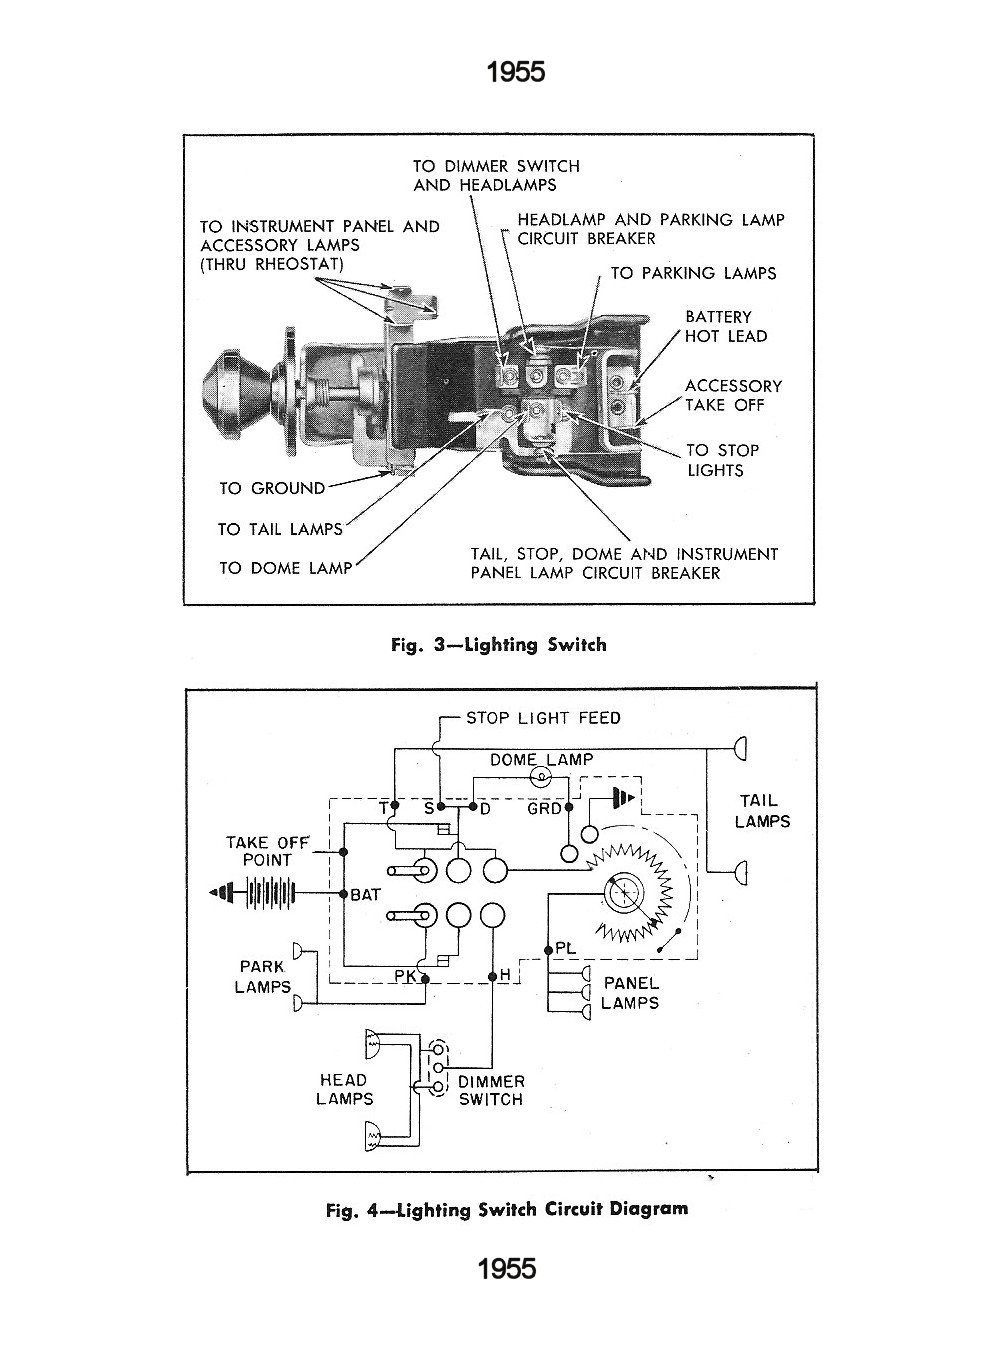 55csm1204a chevy wiring diagrams 55 chevy headlight switch wiring diagram at honlapkeszites.co